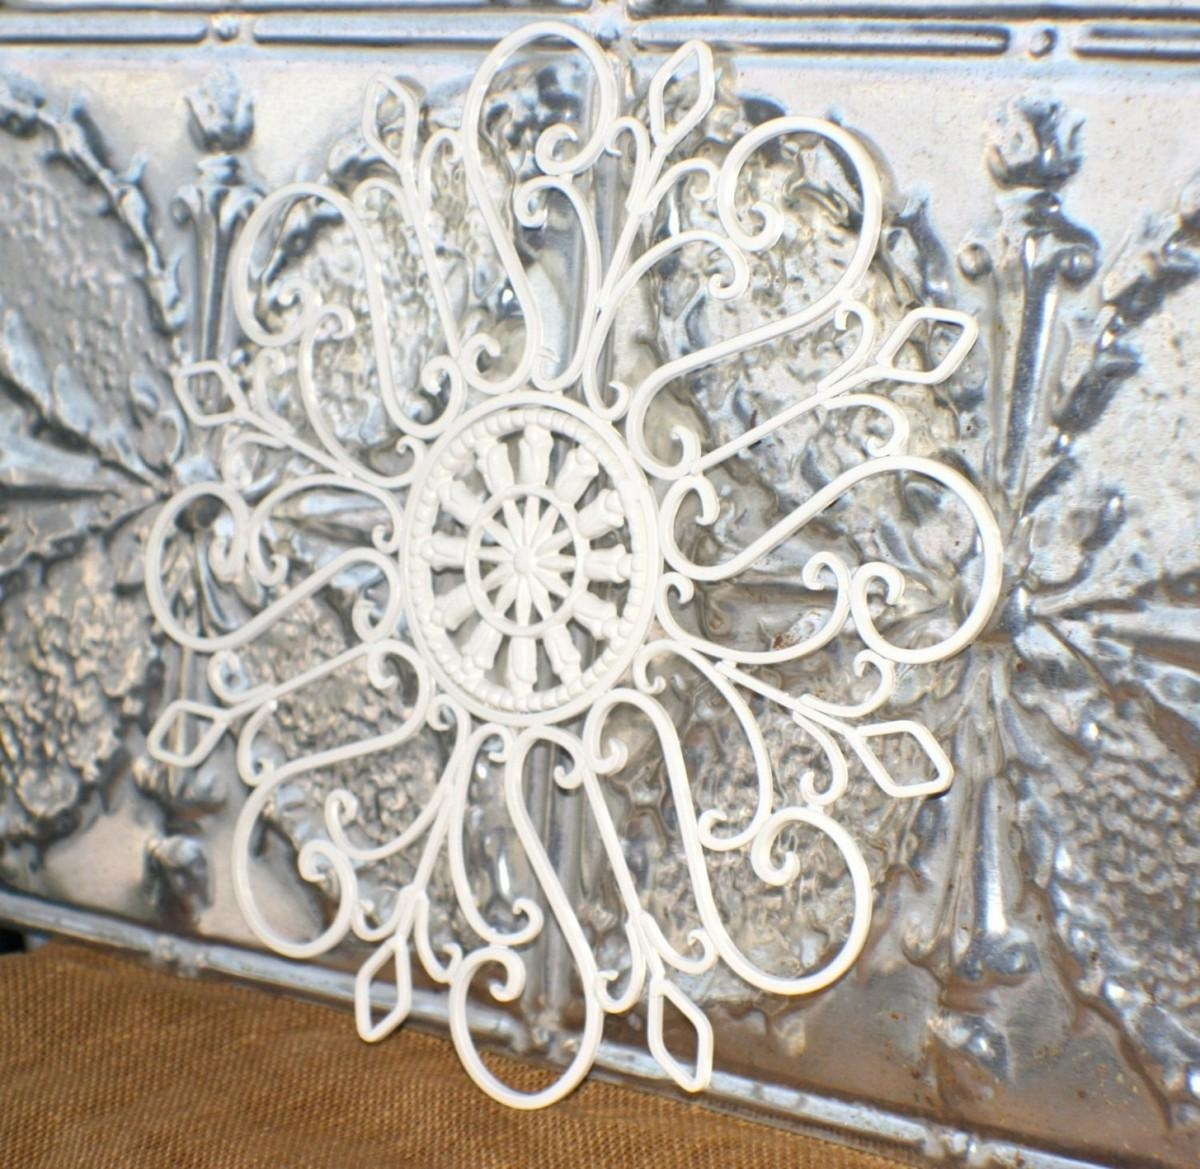 Awesome Metal Wall Art Decor And Sculptures With Metal Medallion Wall Art (View 16 of 20)